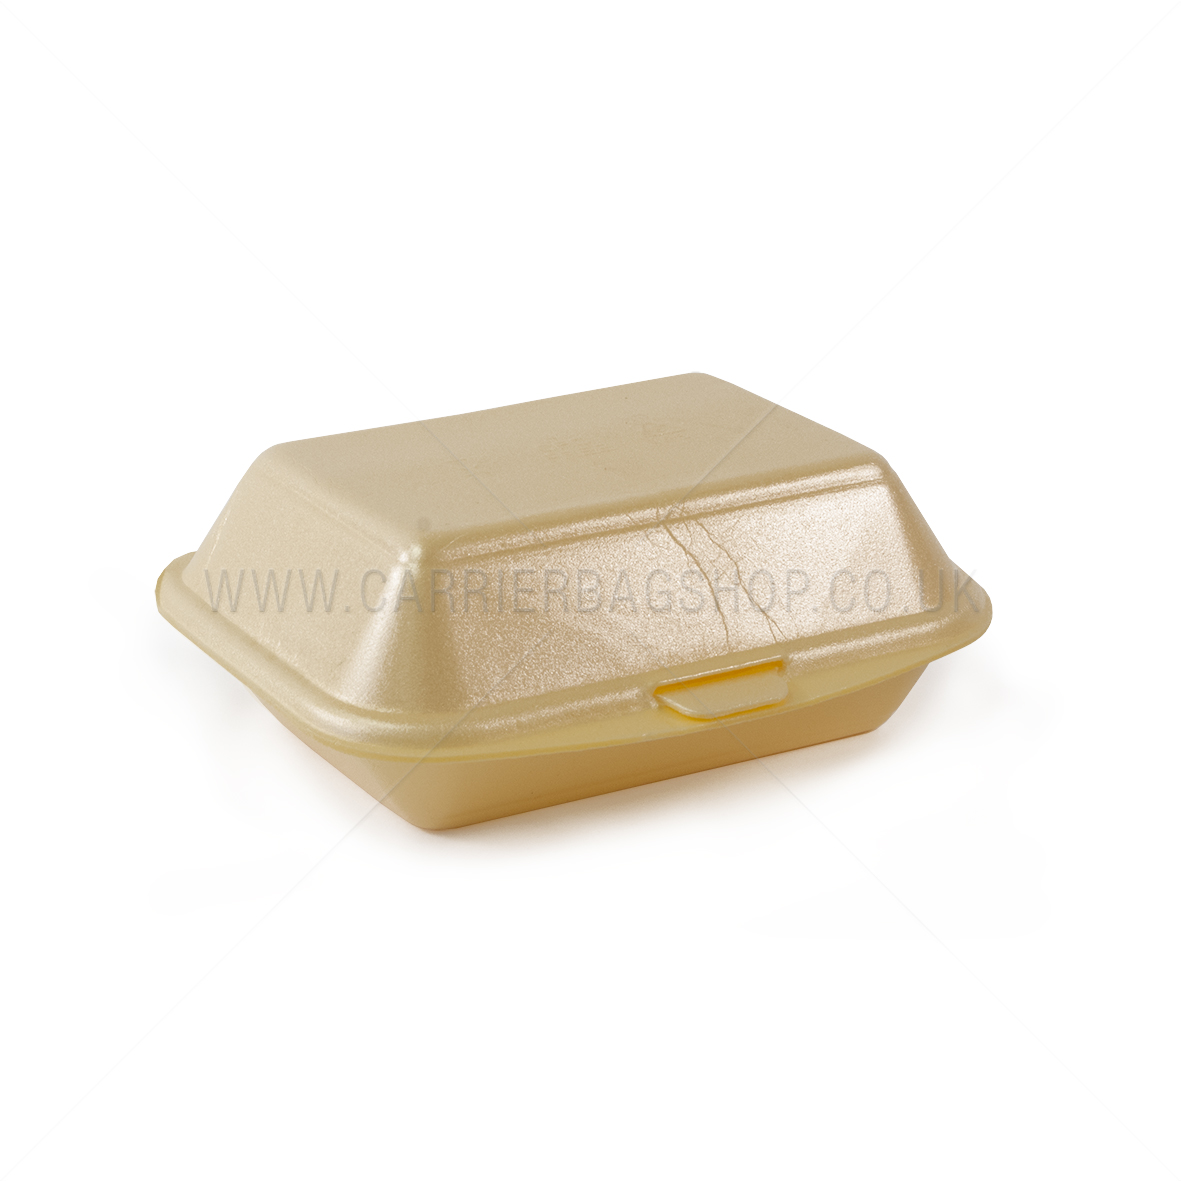 Polystyrene Take Away Food Containers Uk